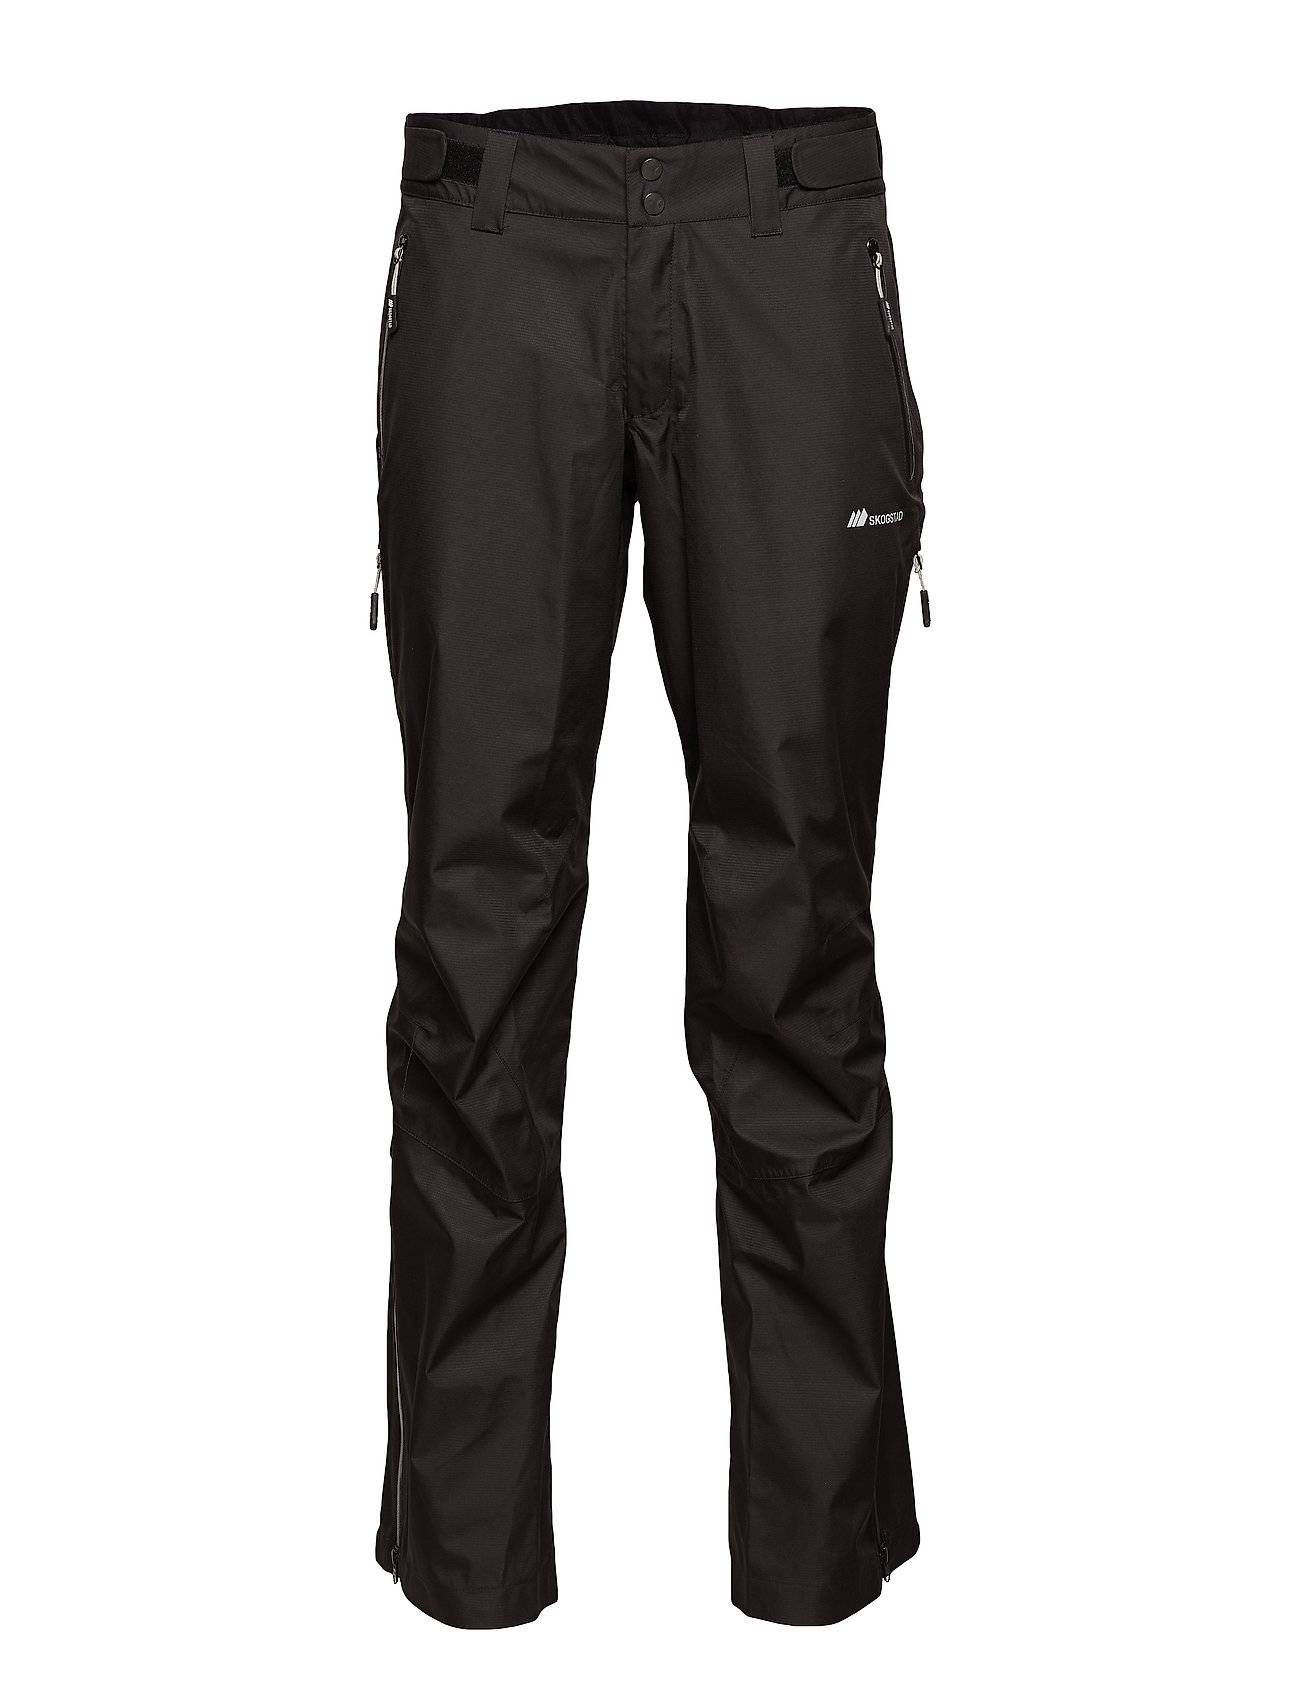 Skogstad Horgi 3-Layer Technical Shell Trouser